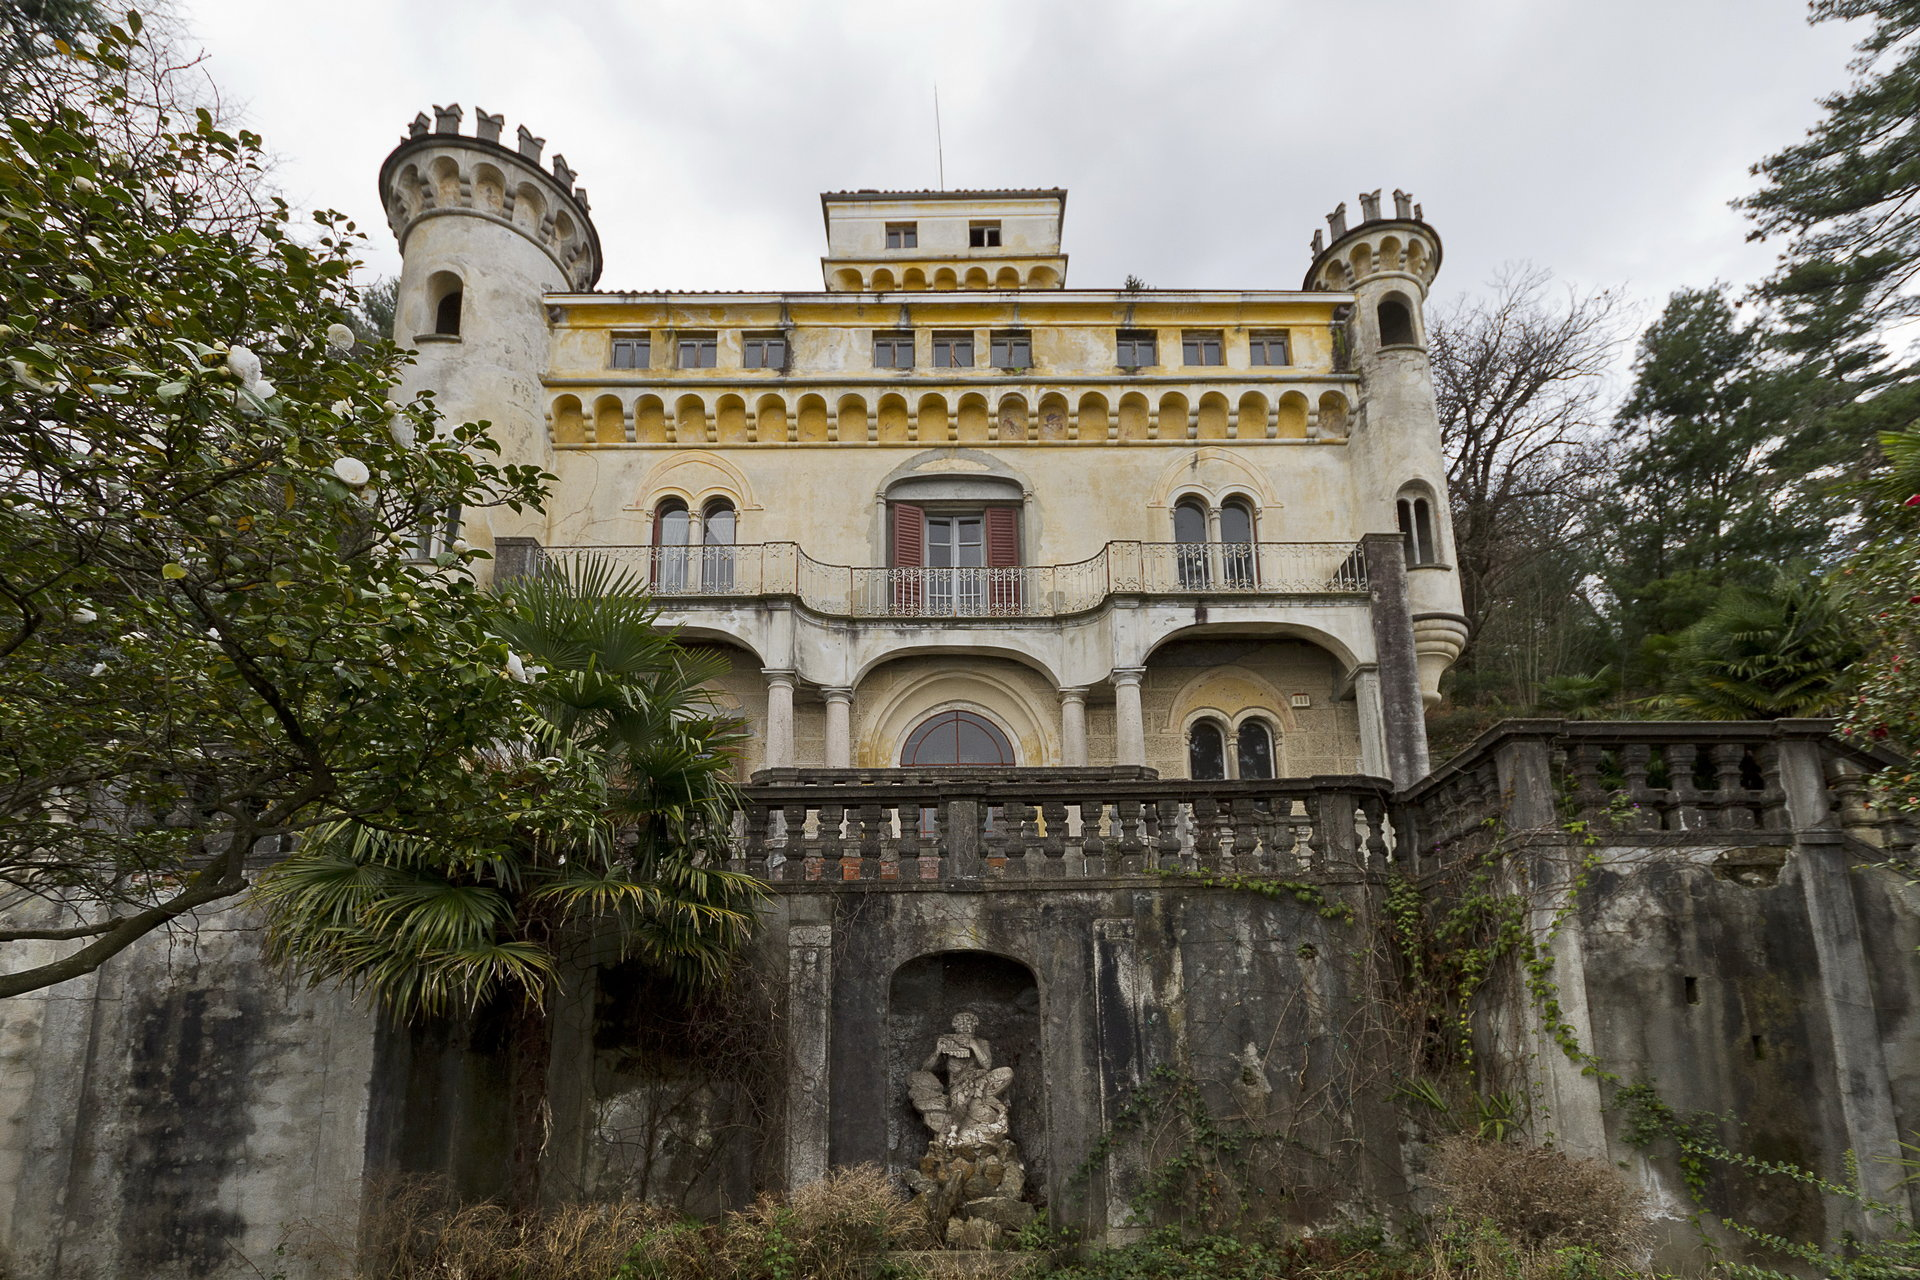 Castle for sale in Stresa on the Lake Maggiore shores